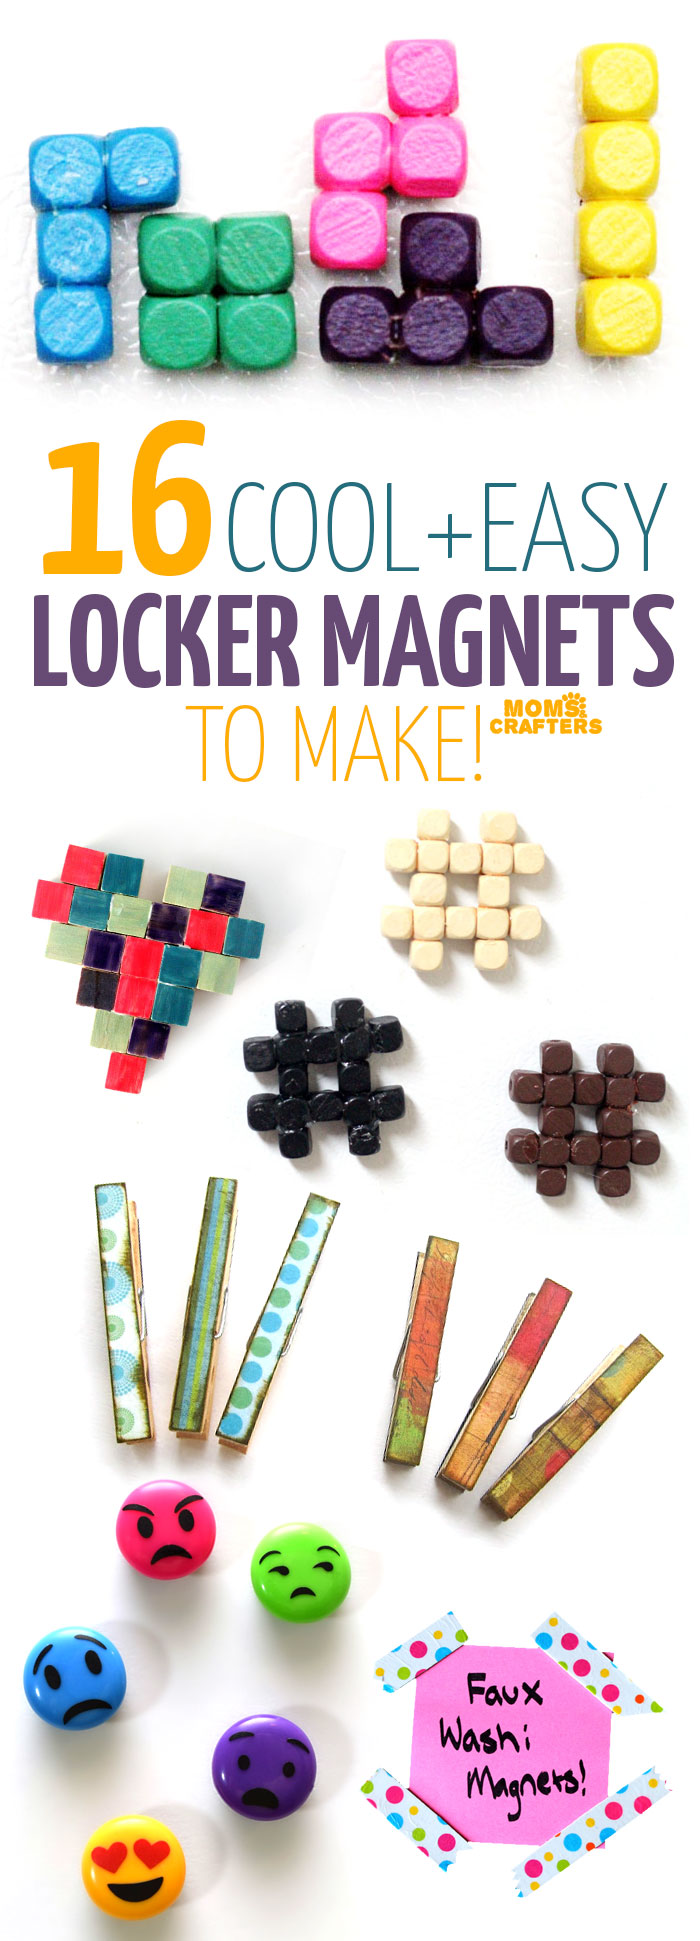 Buy magnets for crafts - Check Out These 16 Cool Magnet Crafts Diy Magnets That Are Perfect For Your Locker